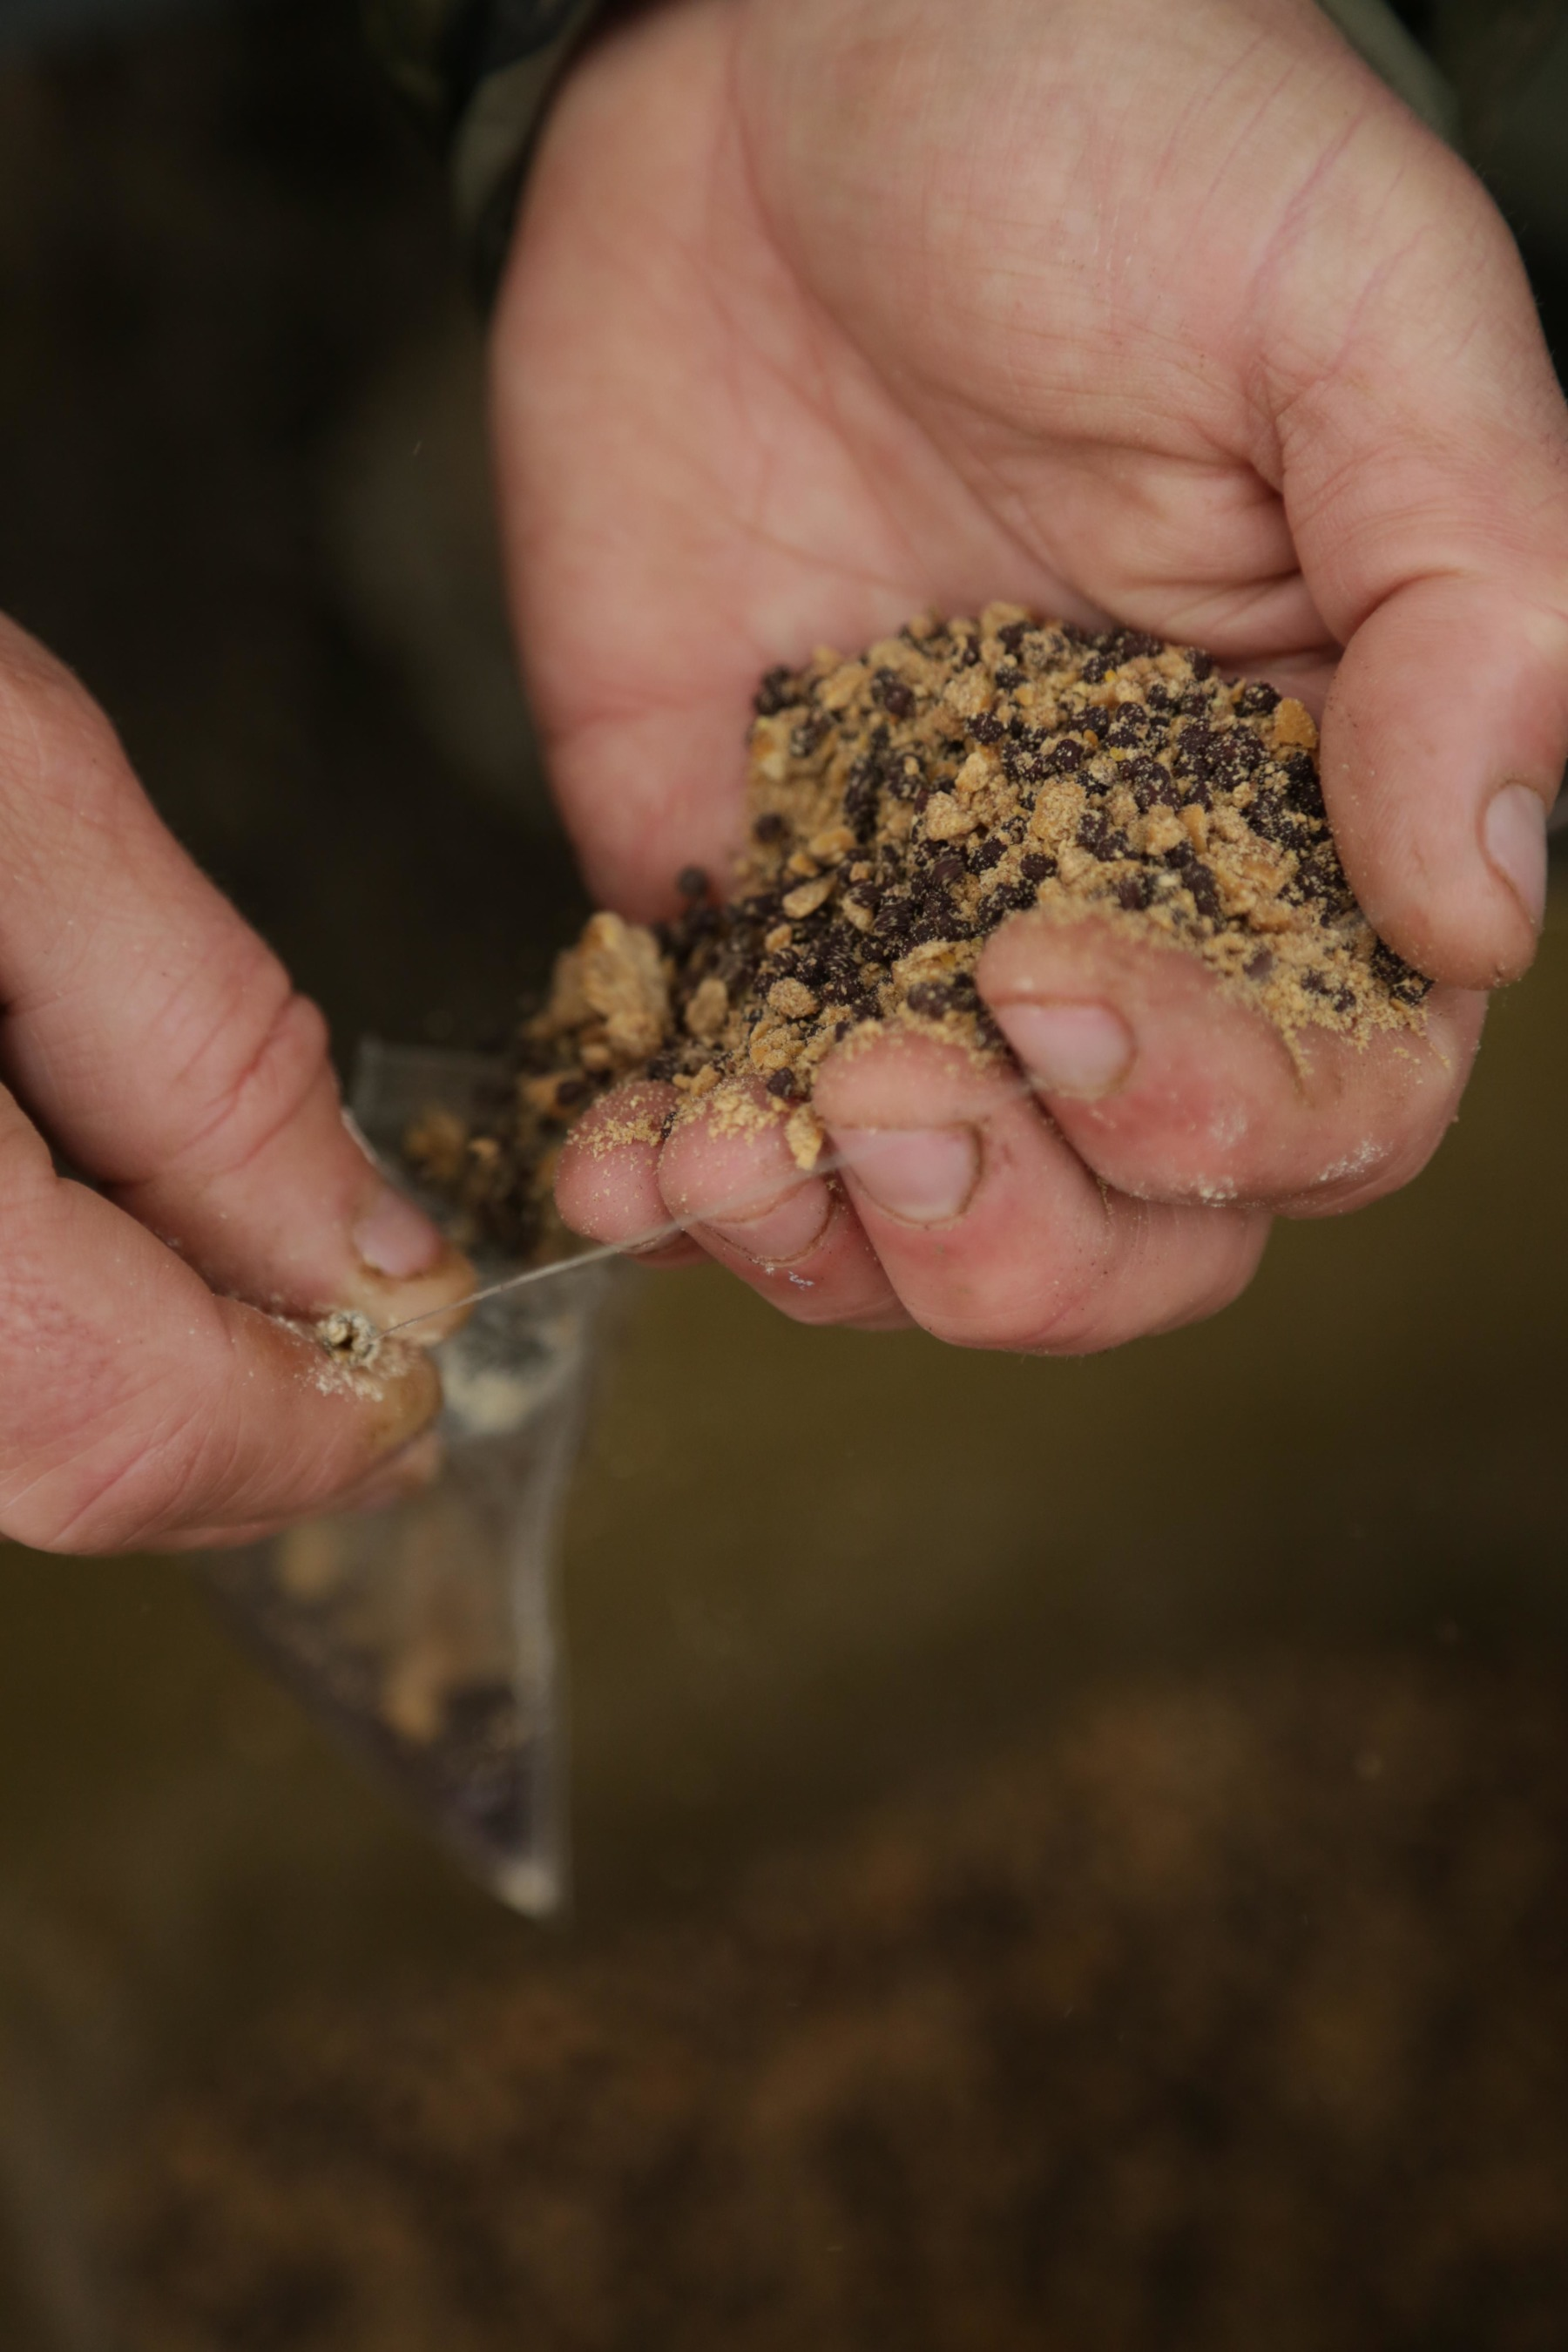 3. Then some of the Manilla and pellet mix.